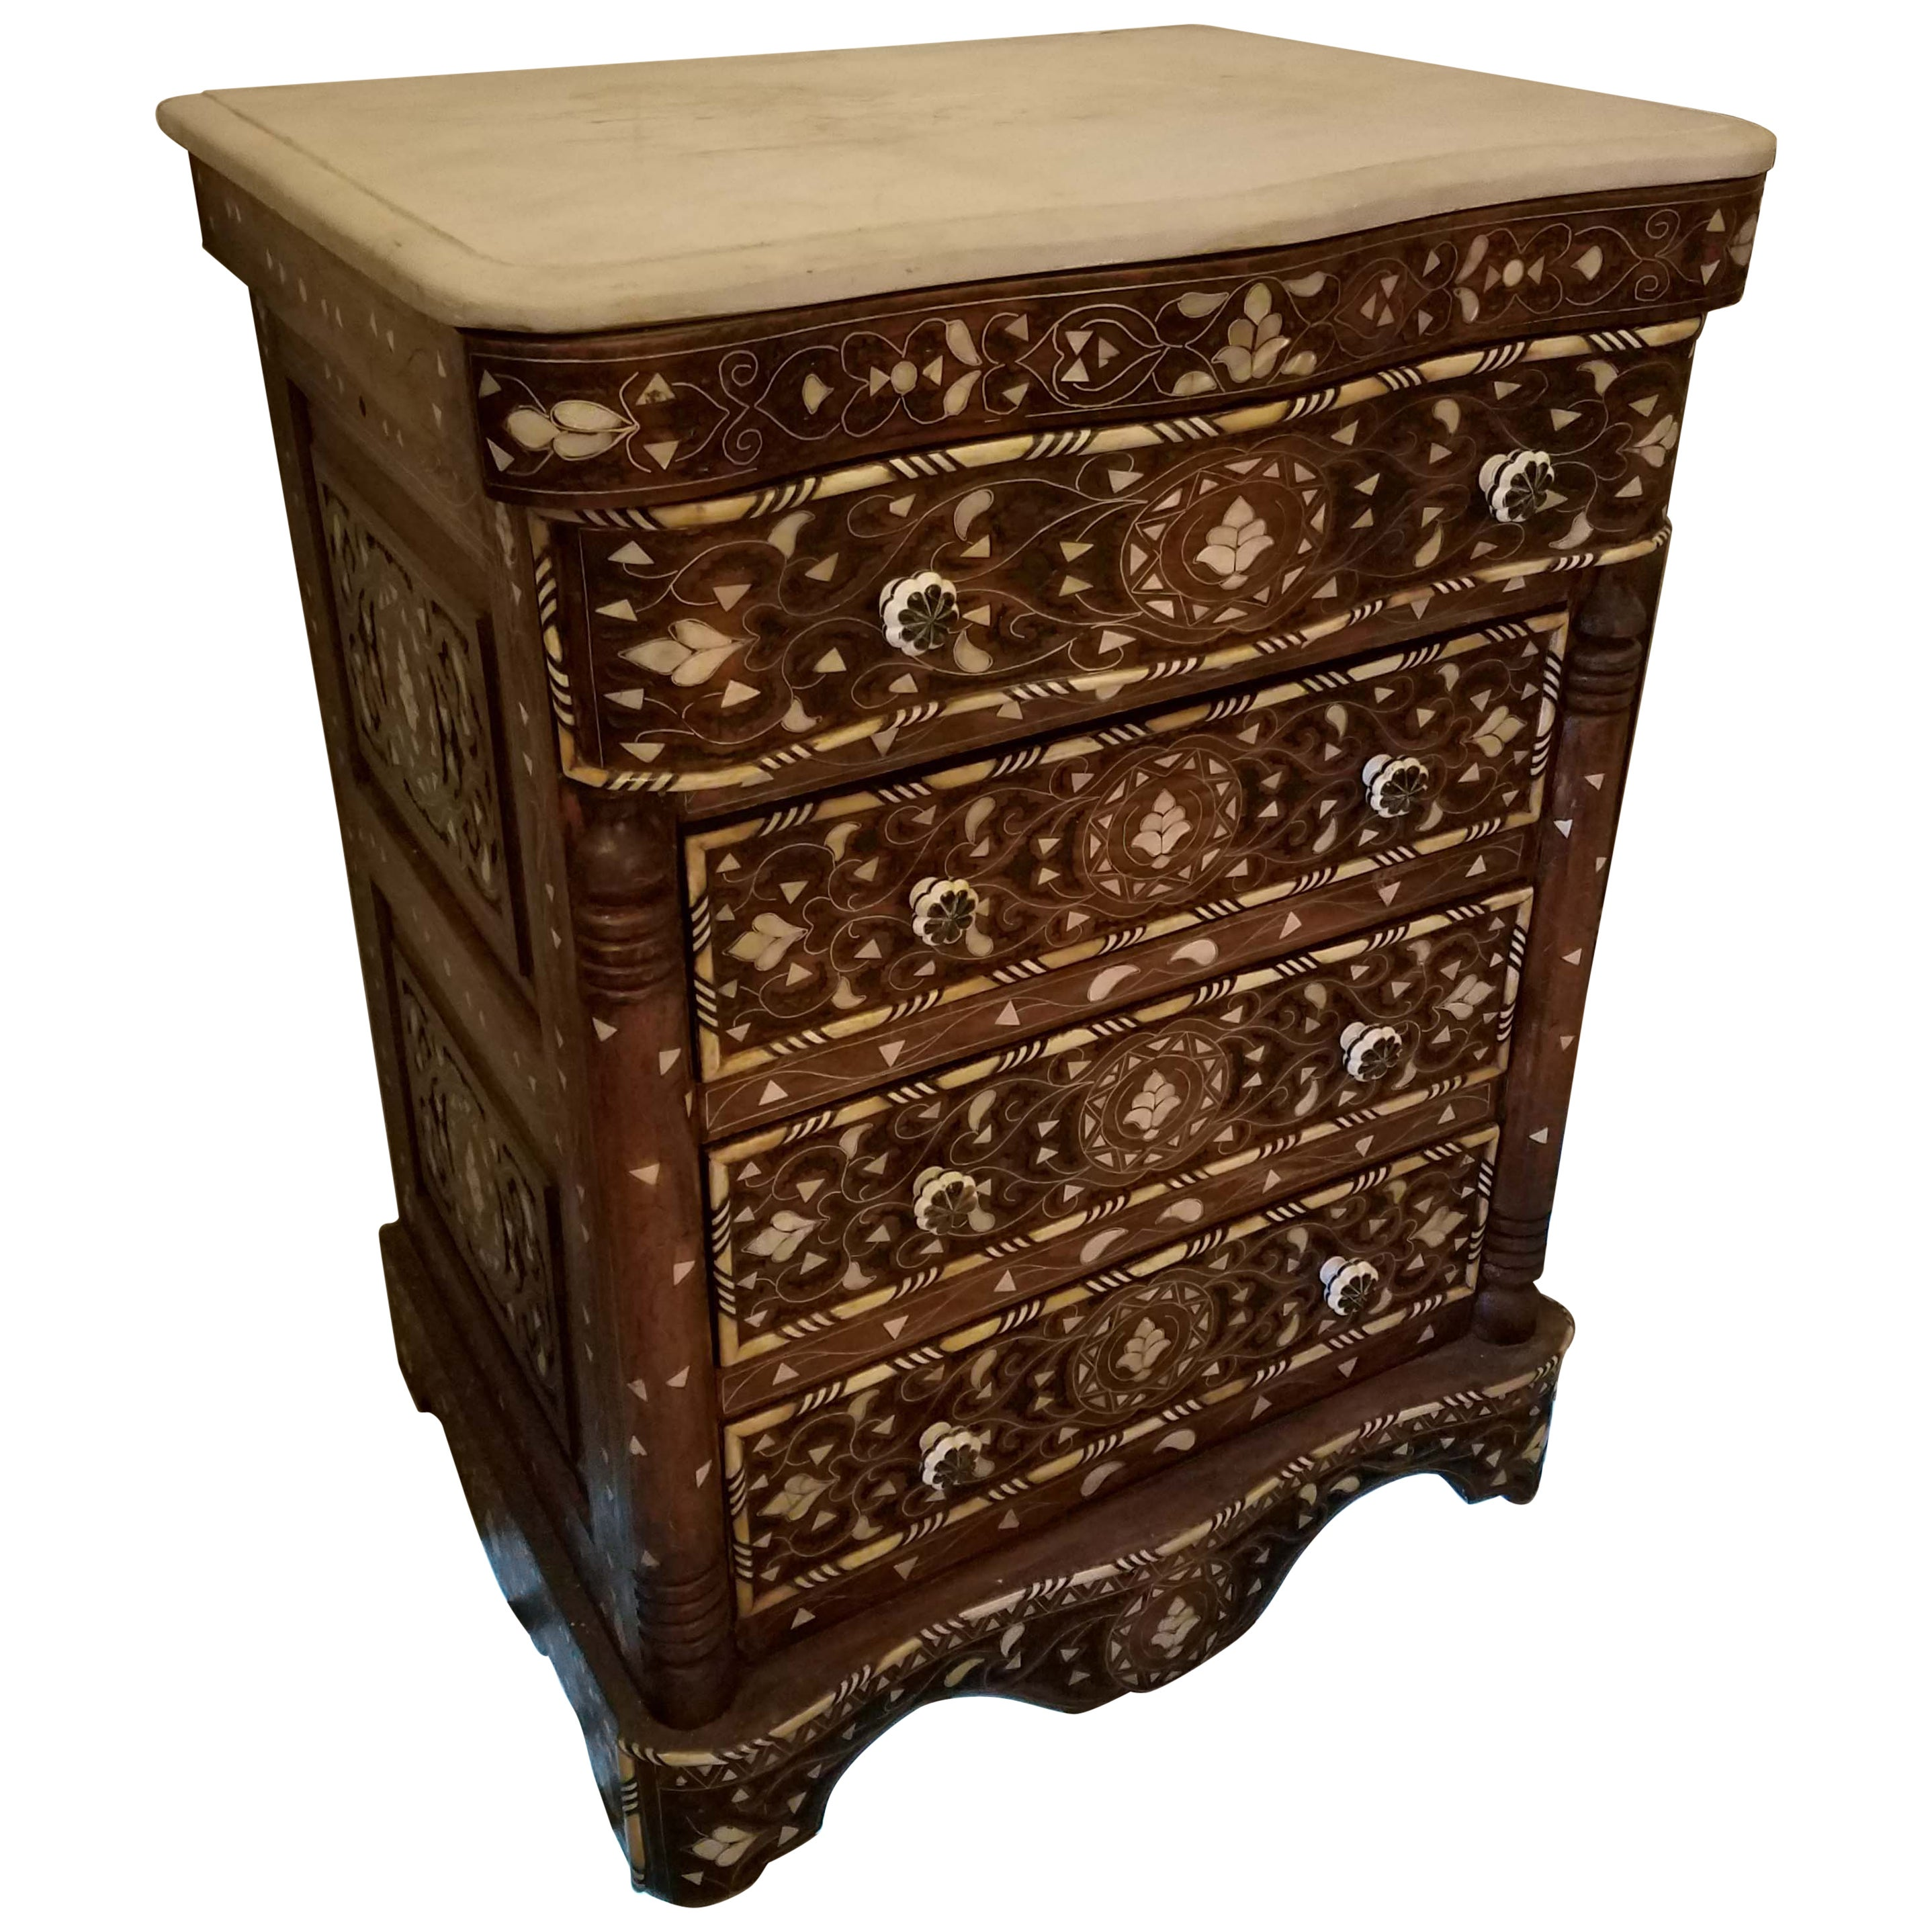 Syrian mother of pearl walnut wood chest of drawers chocolate brown for sale at 1stdibs